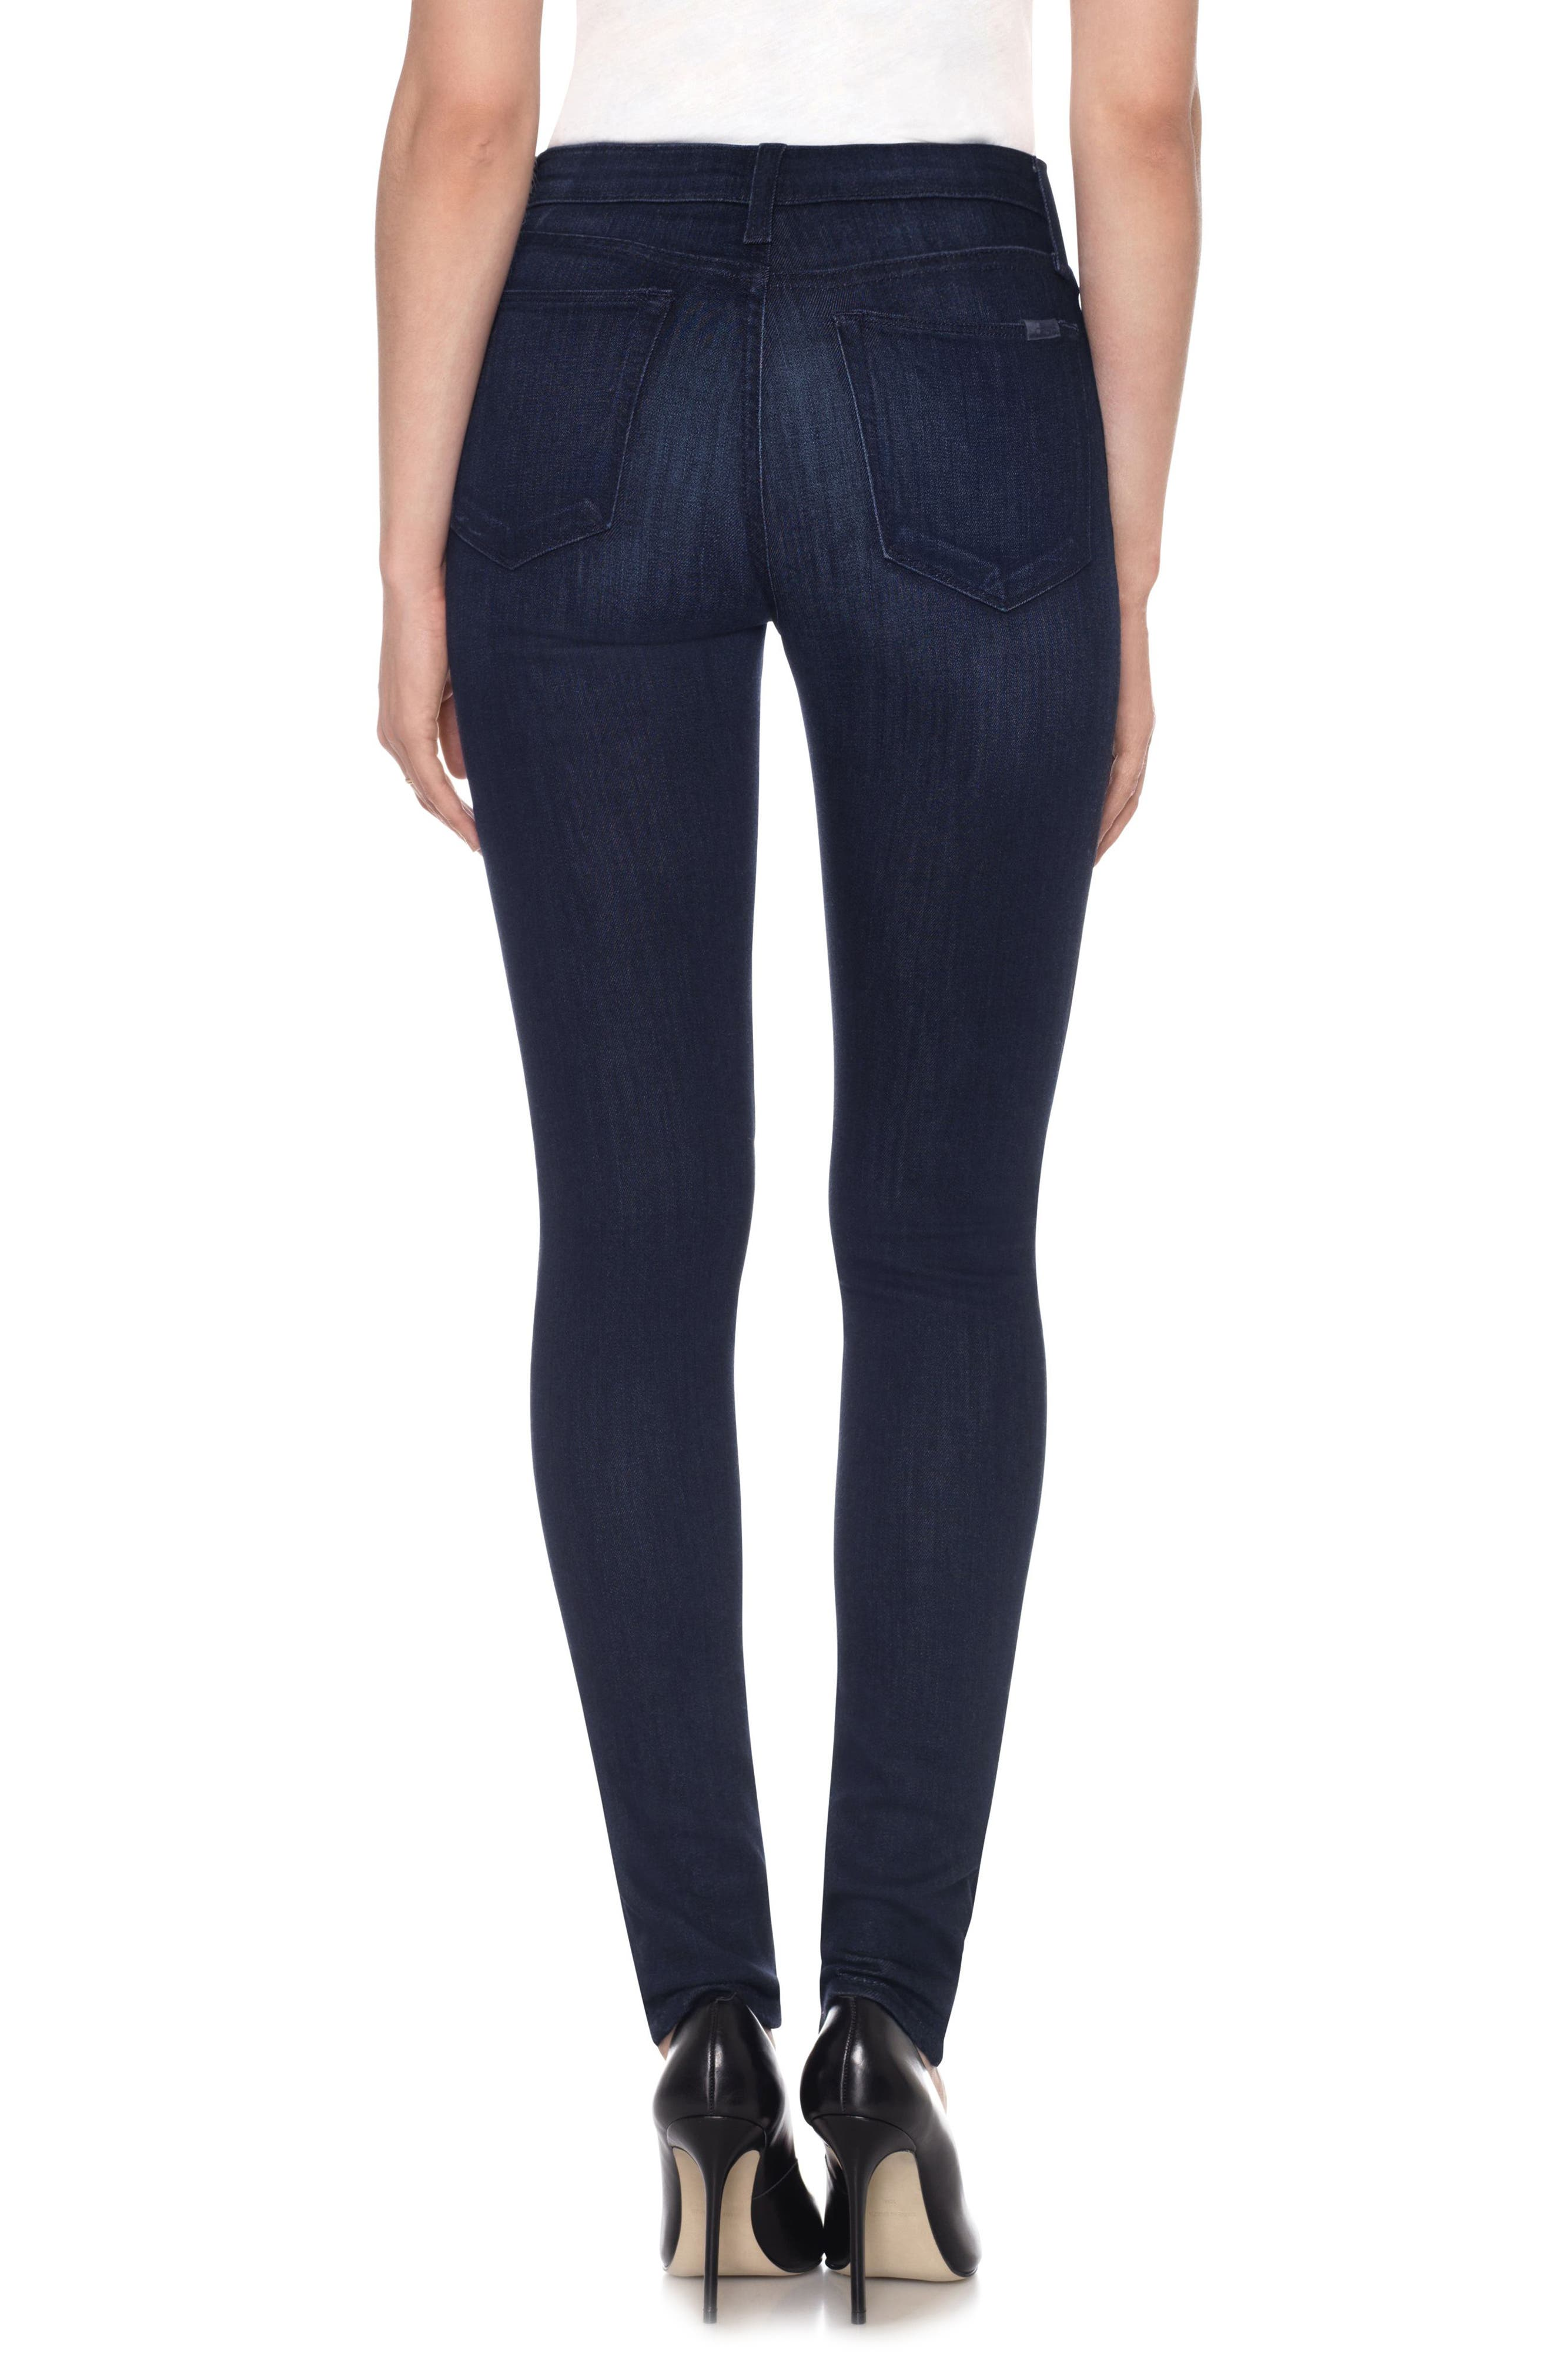 Charlie High Waist Skinny Jeans,                             Alternate thumbnail 2, color,                             400